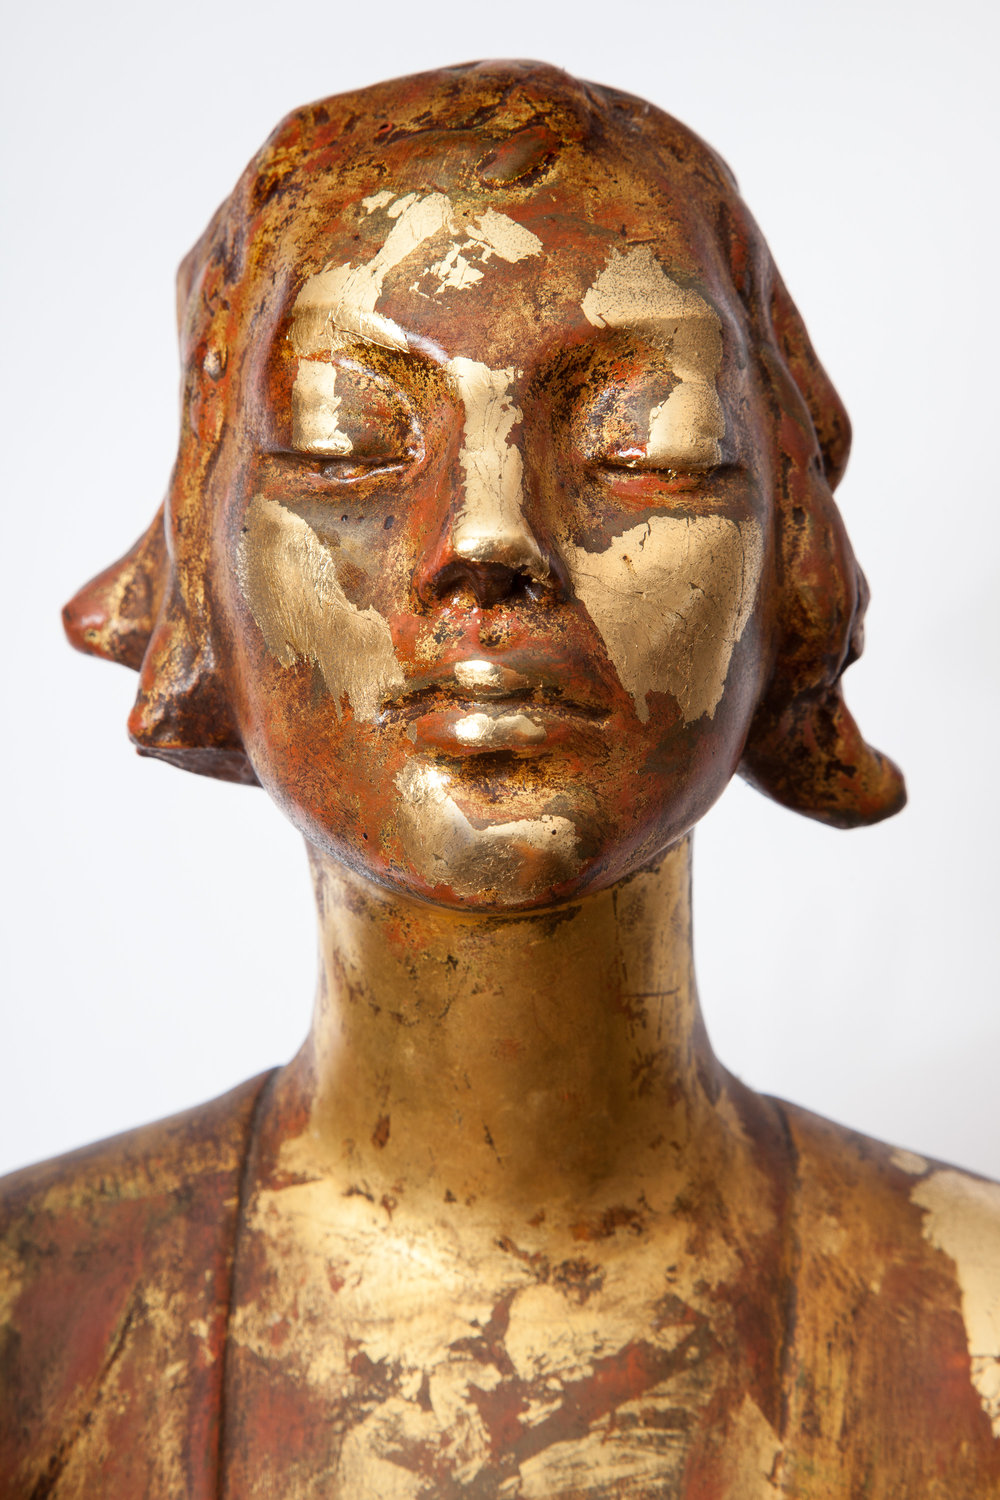 "Stam Gallery is honored to represent the estate sculpture content of Gertrude Vanderbilt Whitney's Old Westbury Studio and Gardens.     ""INTIMATE WORKS FROM HER STUDIO""    May 17 - July 15 2018   -   exhibit opening reception 6 PM May 17    Exhibition of never before seen by the public sculptural works ranging from small maquettes to monumental size works.    Gertrude Vanderbilt Whitney (1875 - 1942) is best known today as the founder of the Whitney Studio Club in 1918, a gathering and exhibit space for America's best artists, which by 1931 became formally known as the Whitney Museum of American Art. She was America's most influential patron of modern American art. She is much less remembered as an artist, a sculptor of great lifetime achievements, arguably America's most important public monument sculptor of her lifetime, including the ""Titanic Memorial""  in Washington, D.C.     Prior to the recent retrospective exhibition at the Norton Museum (now on a two year road trip to several museums around the country) the last time America visited her works was over 75 years ago at the Whitney Museum Memorial Exhibit, held immediately after her death in 1942. So her name as one of America's premier artists of the early years of the 20th century has receded into the art world's near ancient history.    In a recent review of the Norton Museum retrospective, the art critic Eric Gibson of the Wall Street Journal wrote:    ""Gertrude Vanderbilt Whitney is best known as the founder of the Whitney Museum of American Art. But she was also a sculptor, and a very good one. Her memorial to the victims of the Titanic, in Washington, is one of the greatest works of commemorative art ever produced in this country.""    Cornelius Vanderbilt II, Gertrude's father, was America's richest man in 1900. She was born into the uppermost reaches of American wealth and society. And she married Harry Payne Whitney, the heir to only modestly less of a fortune.    By the social standards of Old Westbury, Long Island and Newport, Rhode Island, commercialism was considered a coarse and low class activity. Within the circles of her family's social class, the Whitneys, Vanderbilts, Paynes, etc. being a creative artist would be marginally tolerated. However the act of selling art was totally unacceptable. Therefore, she was particular about having her sculptures produced directly under her personal supervision and, almost without exception, in editions limited to ONE. Since none were ever intended to be sold at exhibitions, there was no purpose in creating larger editions even for her most desirable works. So virtually every Whitney sculptural work is unique, one of a kind. No editions of multiples were allowed for Gertrude.    As many American sculptors of her generation, initially she was under the influence of Auguste Rodin. For Gertrude, Rodin's free handling of materials, along with her sometimes scandalous emotionalism of her subjects, represented both a new approach to sculpture and a way to relieve her0 long bottled-up frustrations.    Later she worked in a realist style that was more innovative for her time, the sculptural equivalent of works by her painter friends, the Ashcan School of painters, such as John Sloan, William Glackens, George Luks, Robert Henri and others, with whom she had shared  her work in numerous exhibitions.    In 1914 Whitney was awarded the commission for the Titanic Memorial in Washington, producing an over-life-size, loosely draped male figure standing with arms outstretched and face tilted slightly upward. In its combination of formal simplicity, rhetorical restraint and subtle symbolism, it has few equals in American public sculpture.    In the same year she sculpted ""Chinoise"" a life size image of  herself standing in the pose of a bodhisattva, reflecting an important part of her Asian visual iconography. The original model of this work is on view here at Stam Gallery, in its marble version it is in the permanent collection of the Whitney Museum. At the time of its creation it was considered highly important as her final break from classical and Rodin influences, and as her first ""new modern"" creation.    In the Stam Gallery show, along with a number of intimate family portraits of children and regal adults, stands a powerful figure of  Captain Guardabassi (1917), Gertrude's very close and intimate friend, dressed in his military uniform, with focused glaze bravely moving into the future. The work is full of emotion reflecting the artist's great affection and respect for him.    In some critics opinion 'The Law"" (sometimes referred to as ""Youth"") created in 1922 is the most extraordinary impressive carved stone image in this show. It depicts a young man in deep thought seated on a pair of symbolic wings. Is he contemplating all the mysteries of life or just choices of justice? In either case, it is a wonderful image from the artist's gardens in Old Westbury.    Art of the first half of the 20th century was dominated by male academics, artists and critics. Creative women of the time were allowed only into the fringes of the art world, and their standing in the community tended to reflect mild and paternal support, not dissimilar to the gentile attitudes of the rest of society toward the ""weaker gender"". In general, women artist's many and great contributions to movements of important art trends in America had been mostly dismissed."